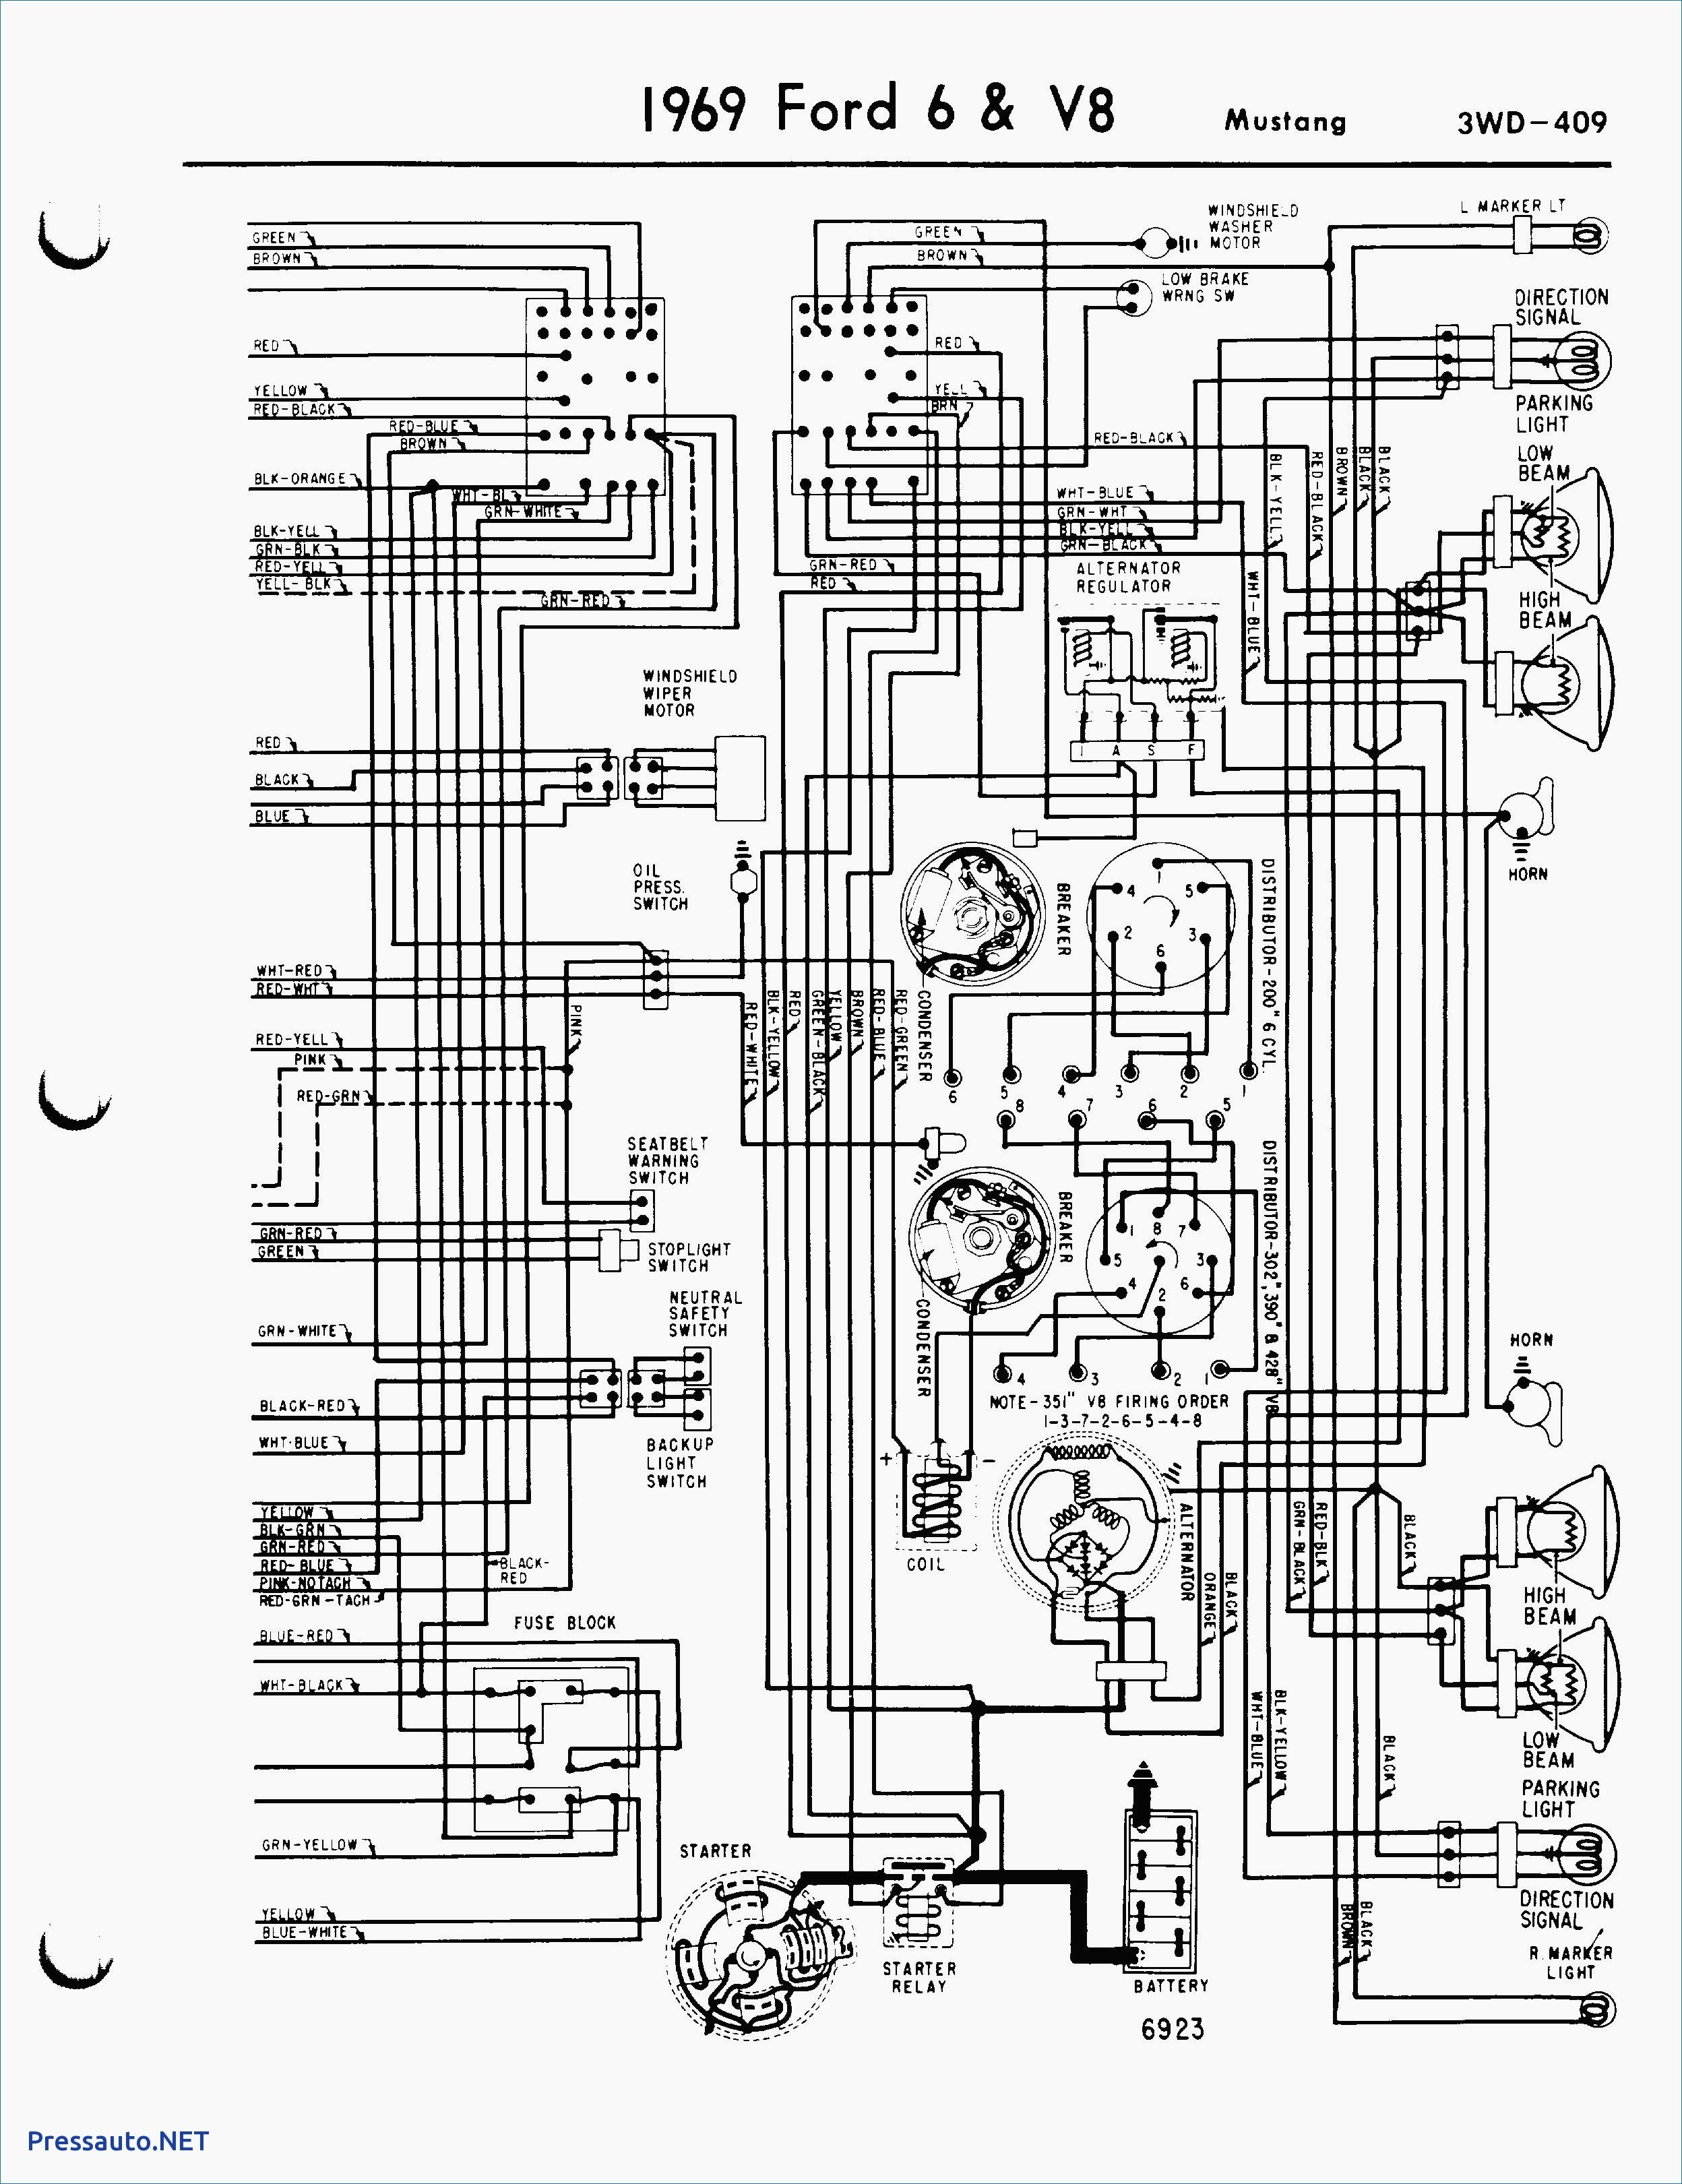 1982 Bronco Voltage Regulator Wiring Trusted Diagrams Toyota Pickup Alternator Diagram 69 Ford Diy U2022 Club Car